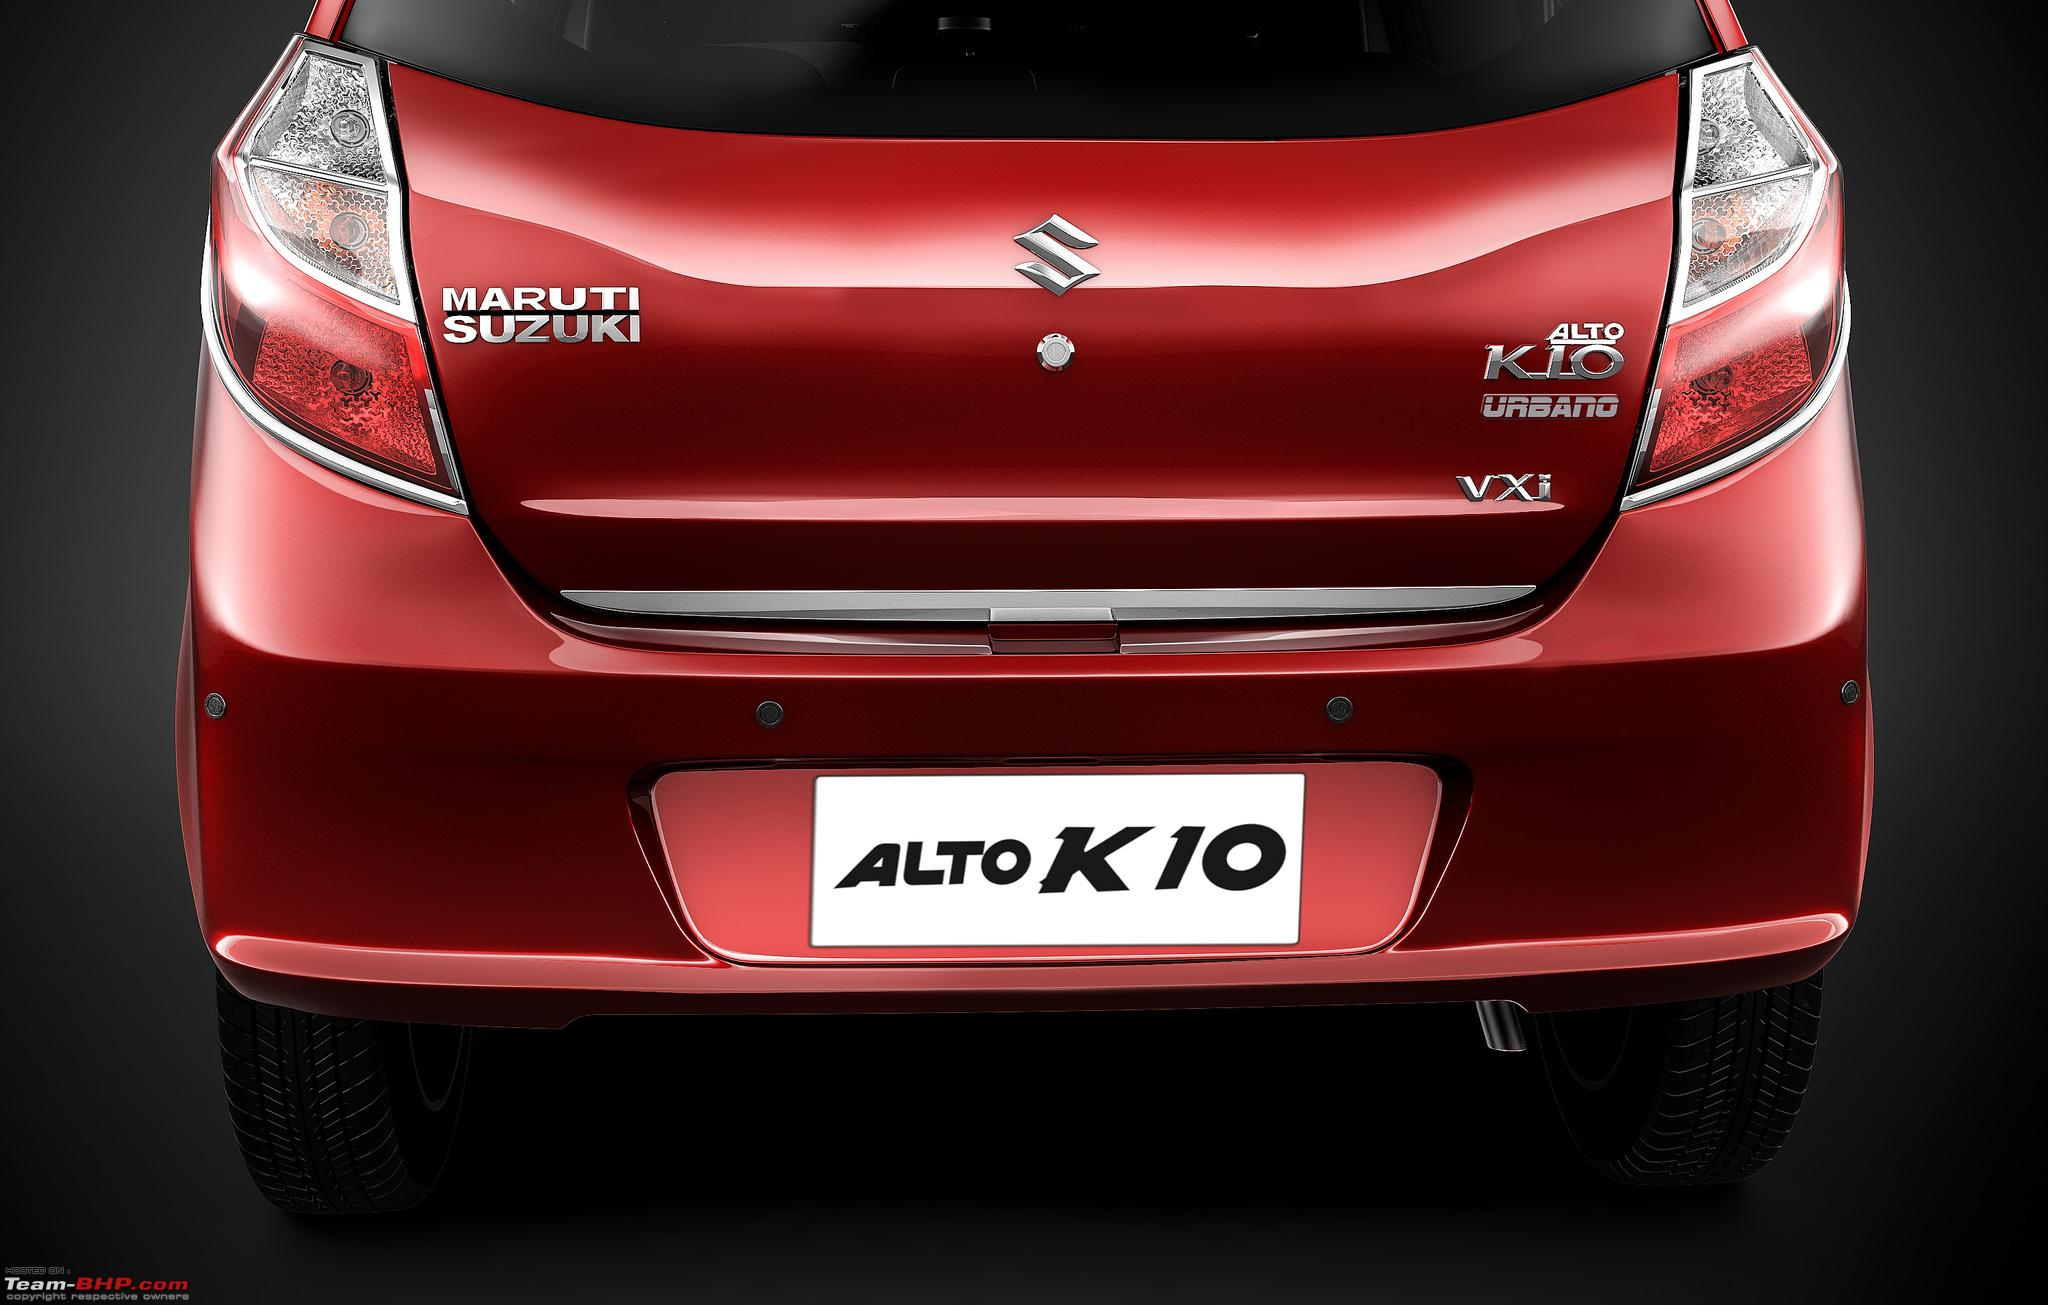 Maruti Alto K10 Official Review Page 7 Team Bhp